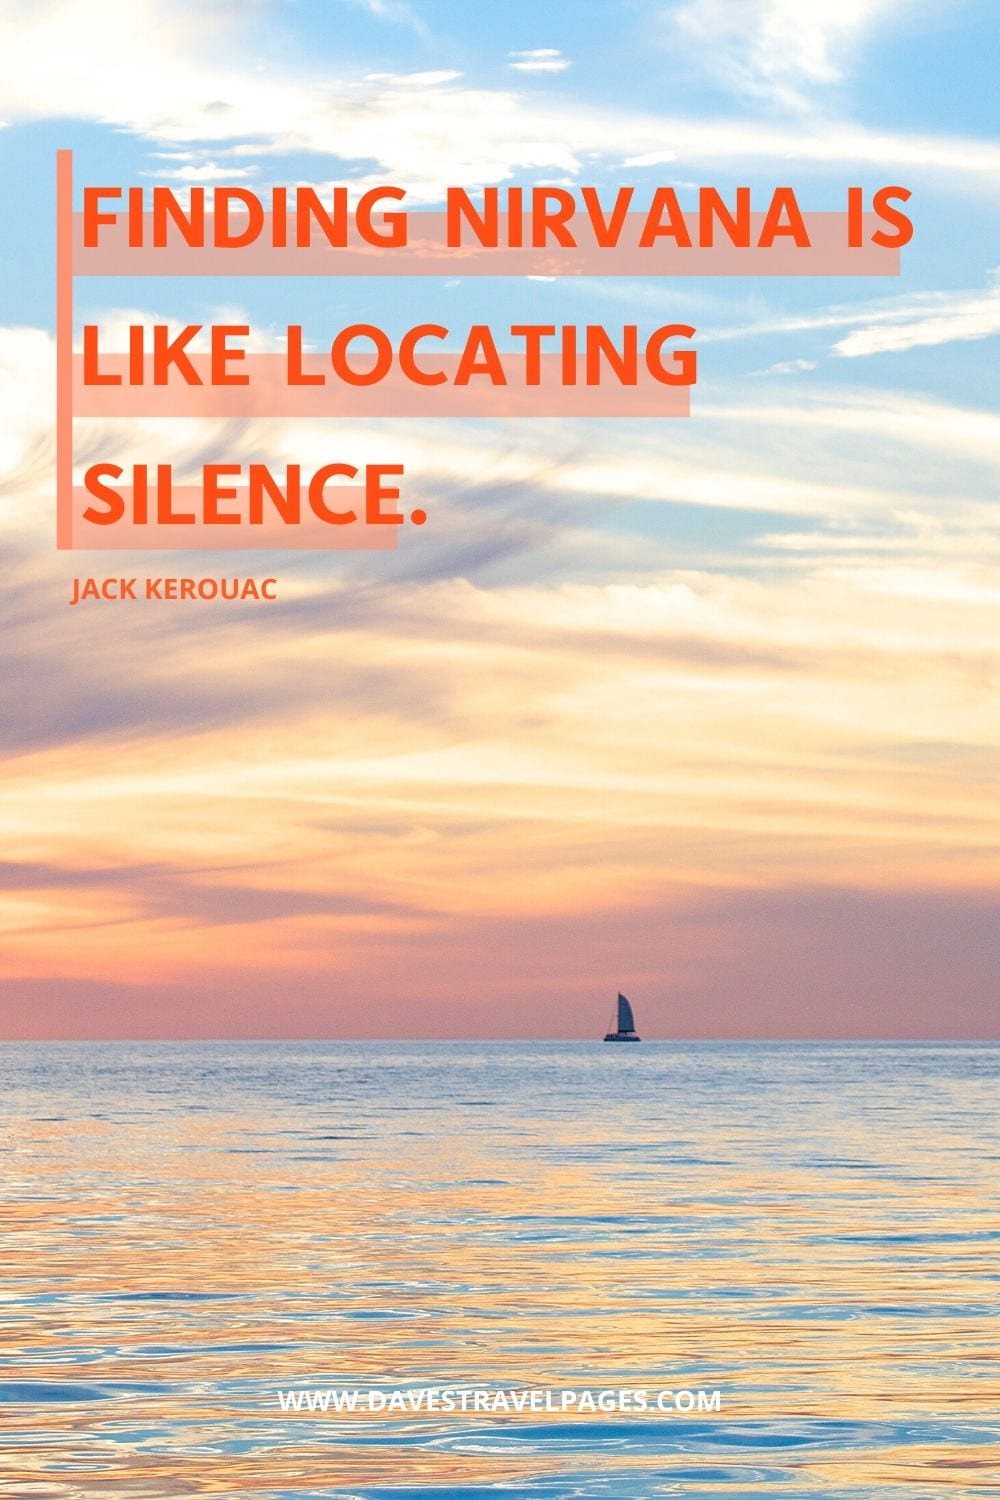 """Finding Nirvana is like locating silence."" - The Dharma Bums Jack Kerouac Quote"